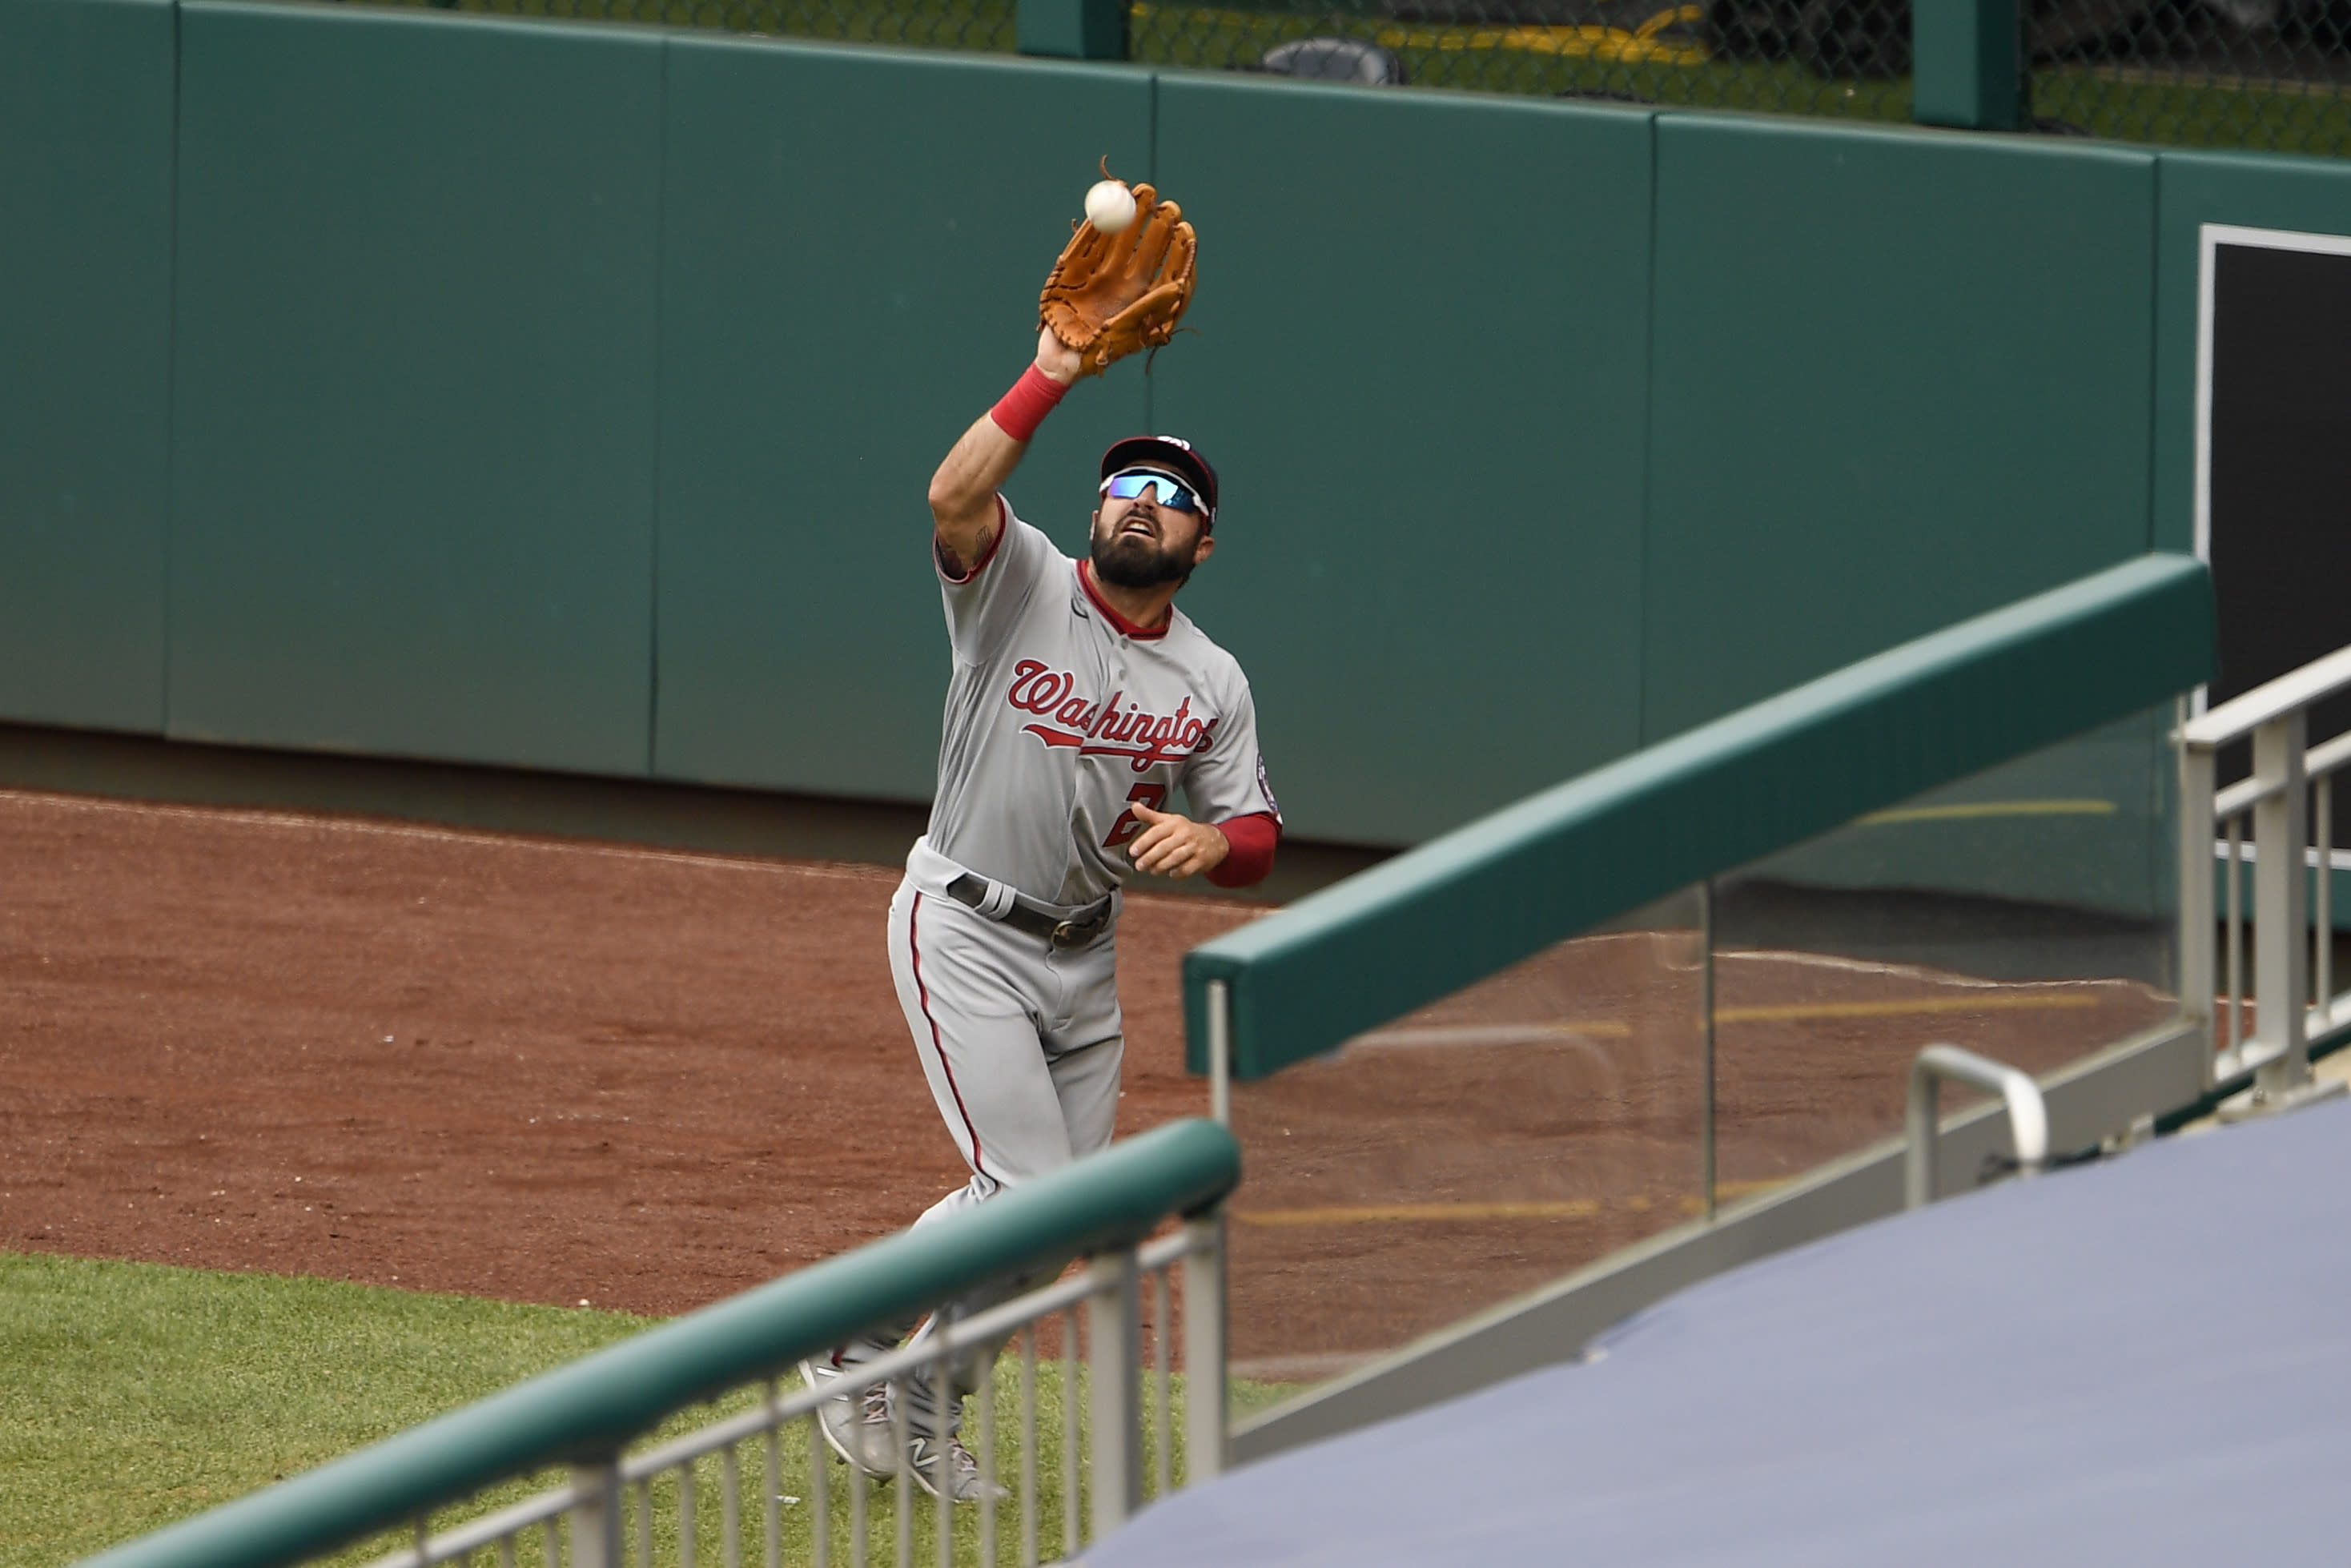 Washington Nationals right fielder Adam Eaton makes a catch on a fly ball by Toronto Blue Jays' Bo Bichette during the third inning of a baseball game Thursday, July 30, 2020, in Washington. (AP Photo/Nick Wass)